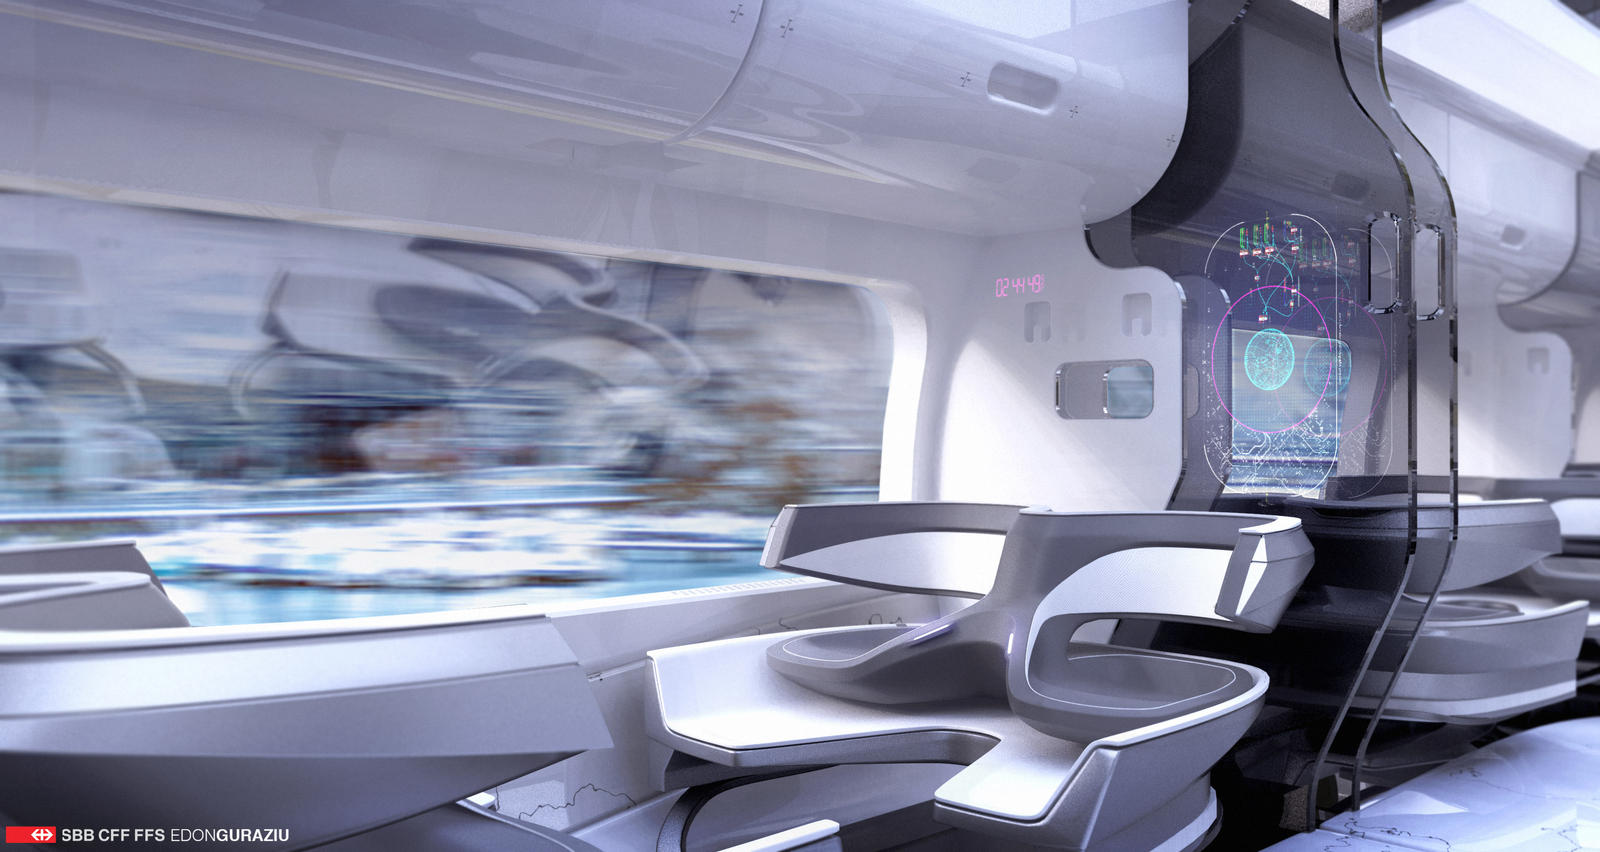 Futuristic train interior design by edonguraziu on deviantart - Fantastic modern architecture in futuristic design with owner passion ...